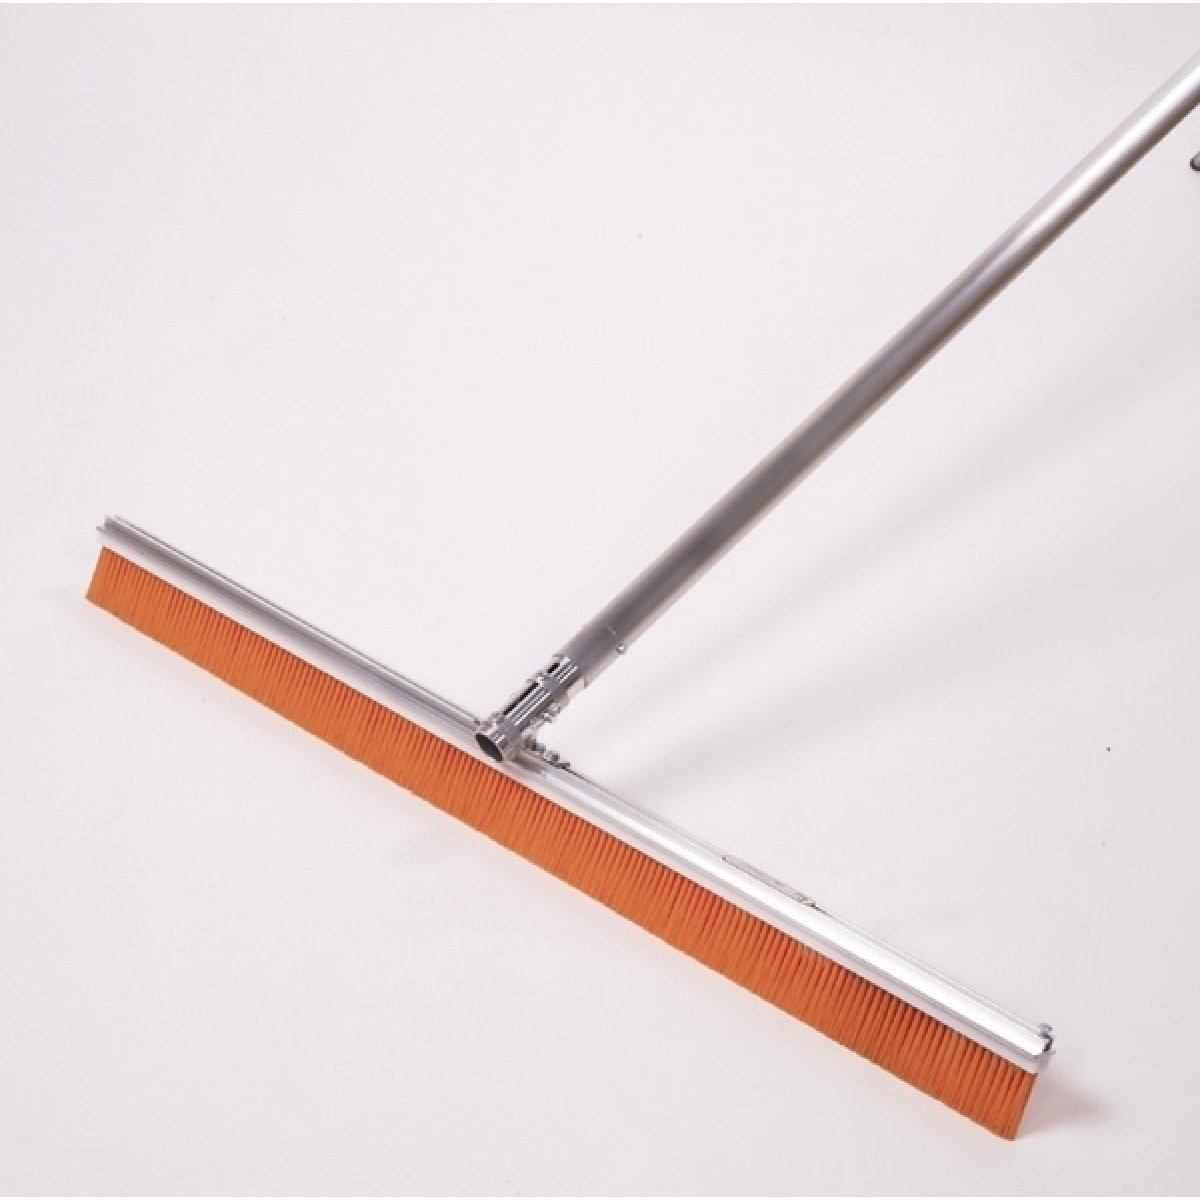 48 Quot Chameleon Concrete Broom Single Brush System With